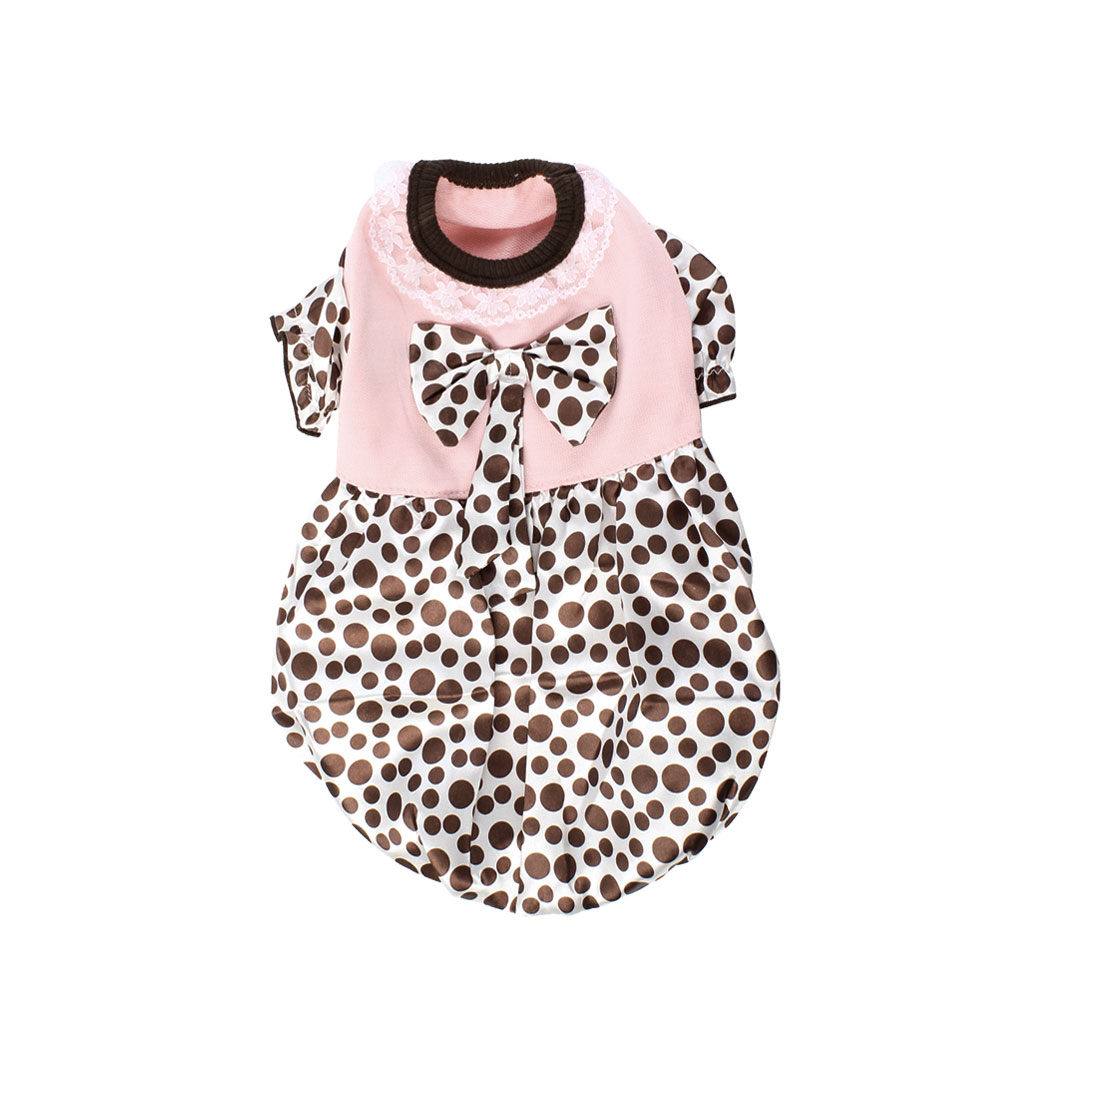 Round Neck Dot Print Lace Detail Pet Dog Dress Clothes Coffee Color Pink S